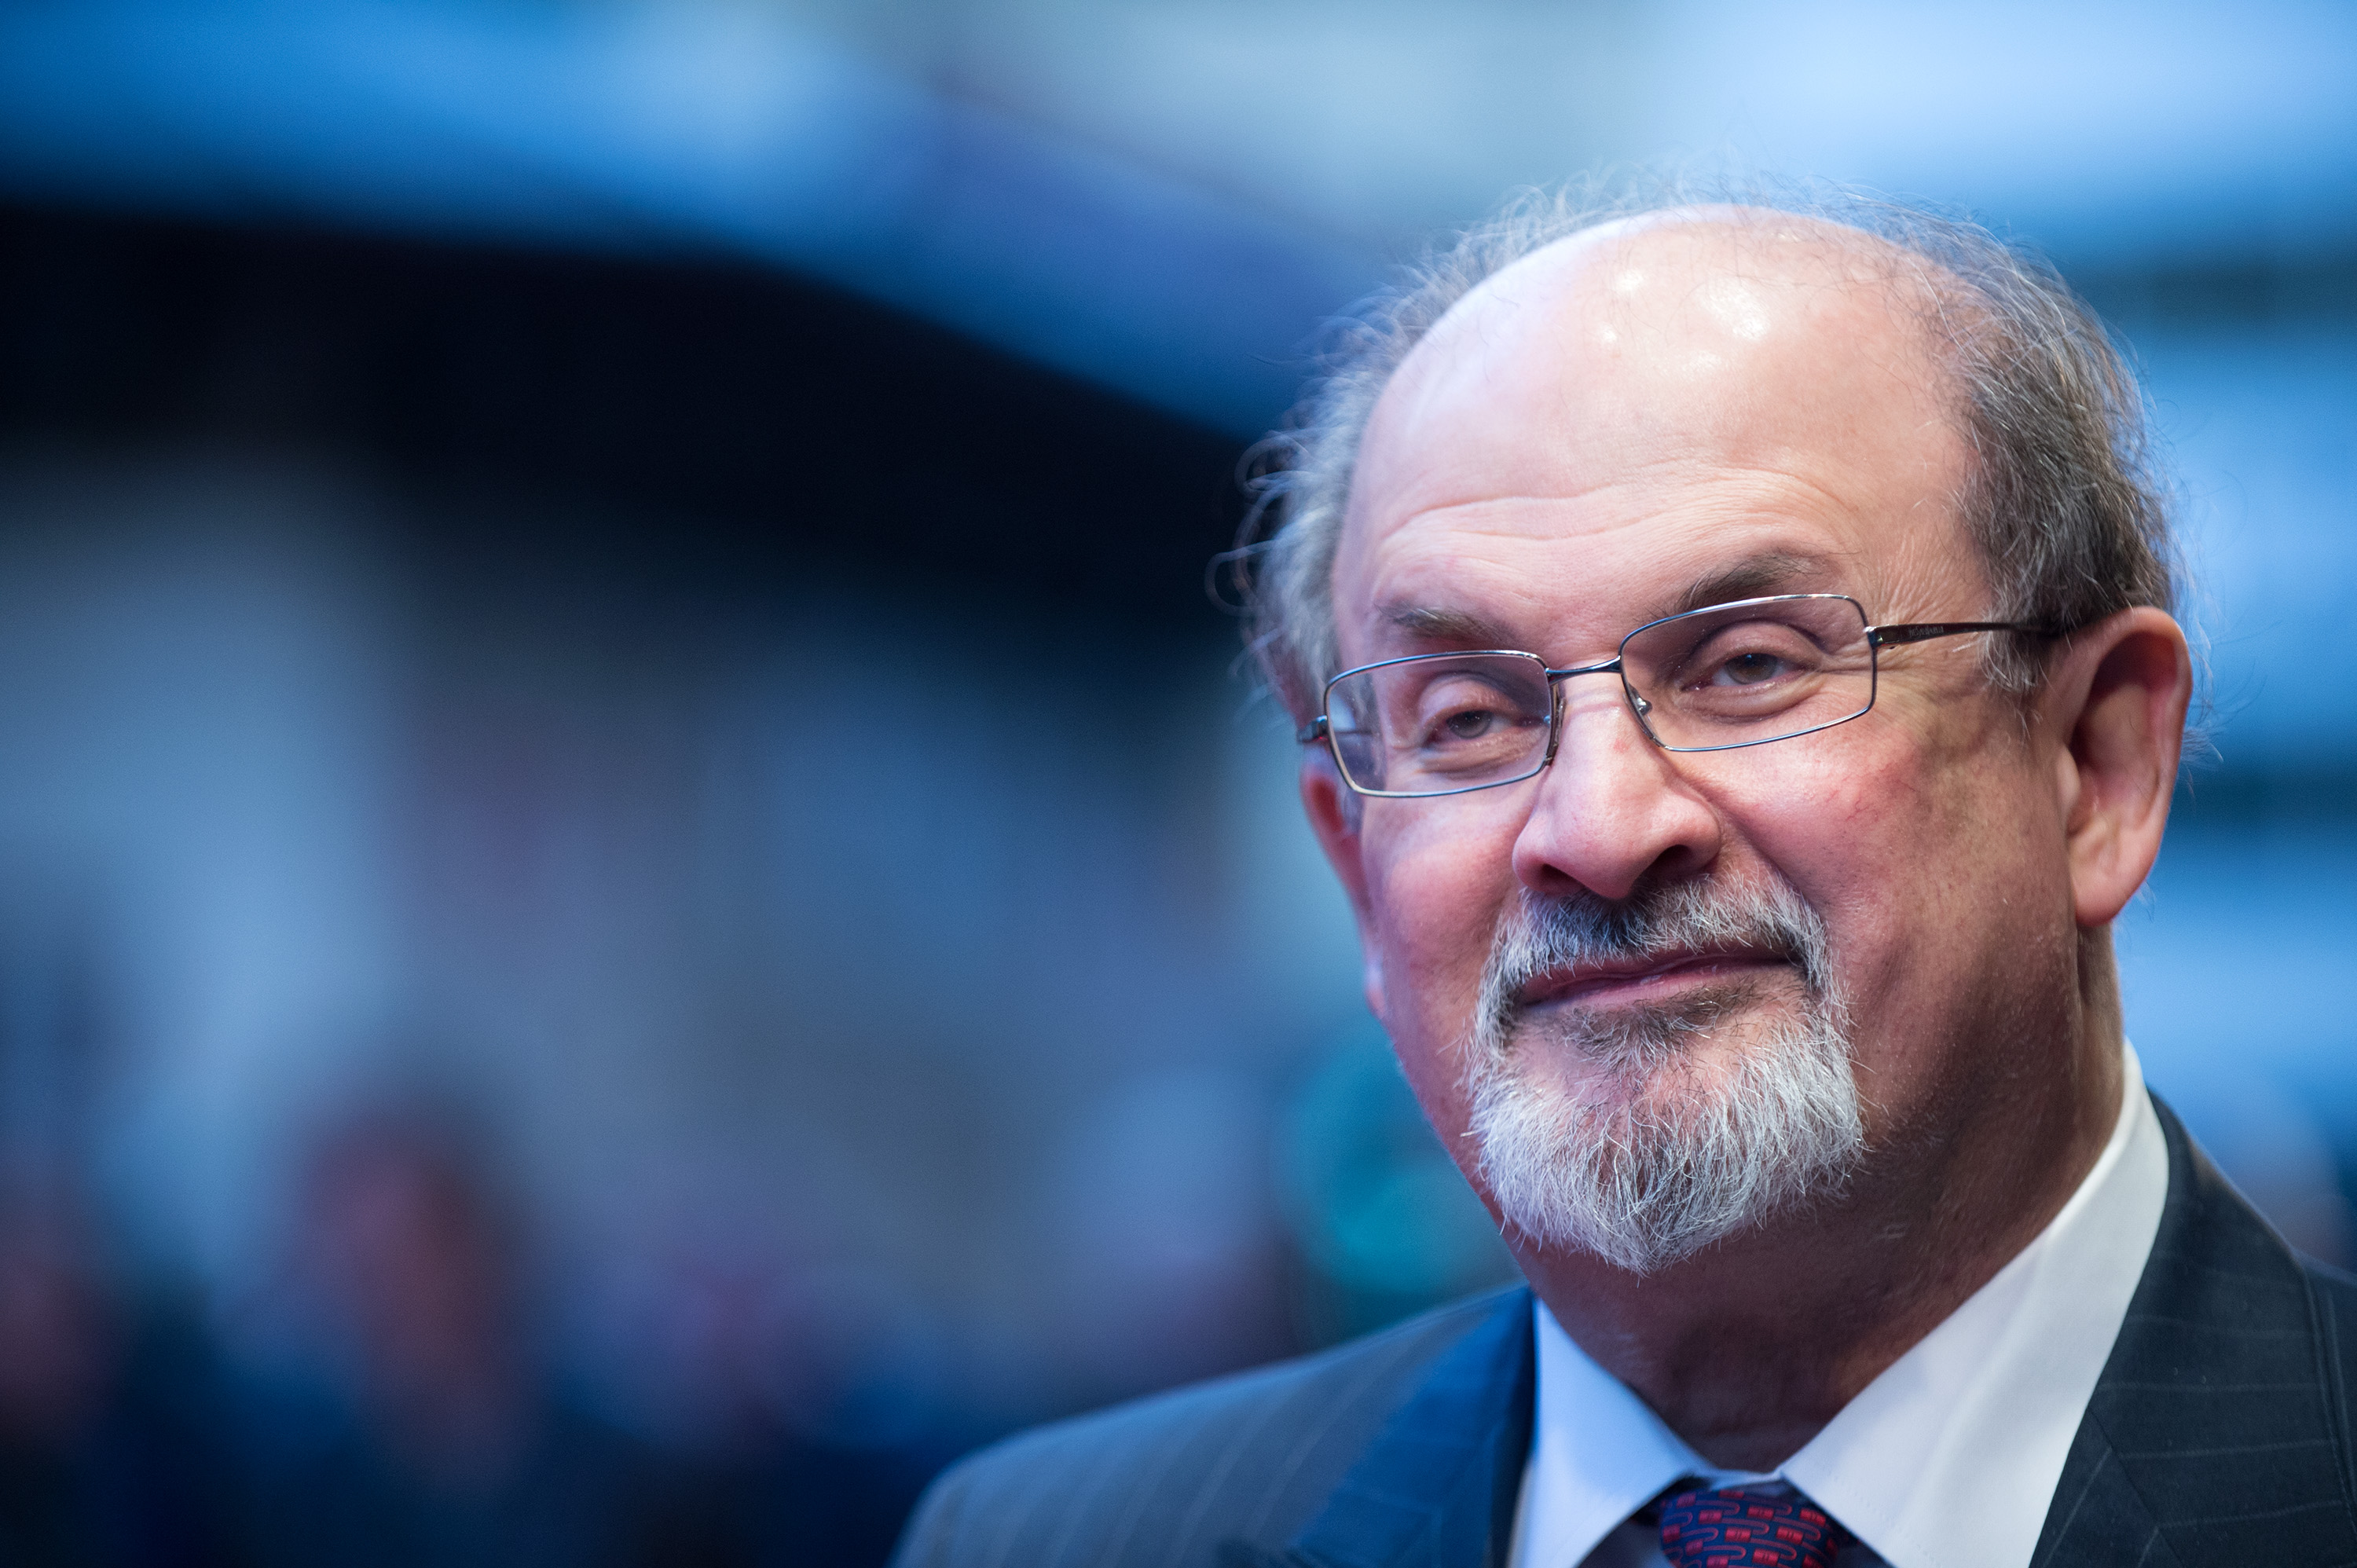 Salman Rushdie attends the premiere of 'Midnight's Children' during the 56th BFI London Film Festival at Odeon West End on Oct. 14, 2012 in London, England.